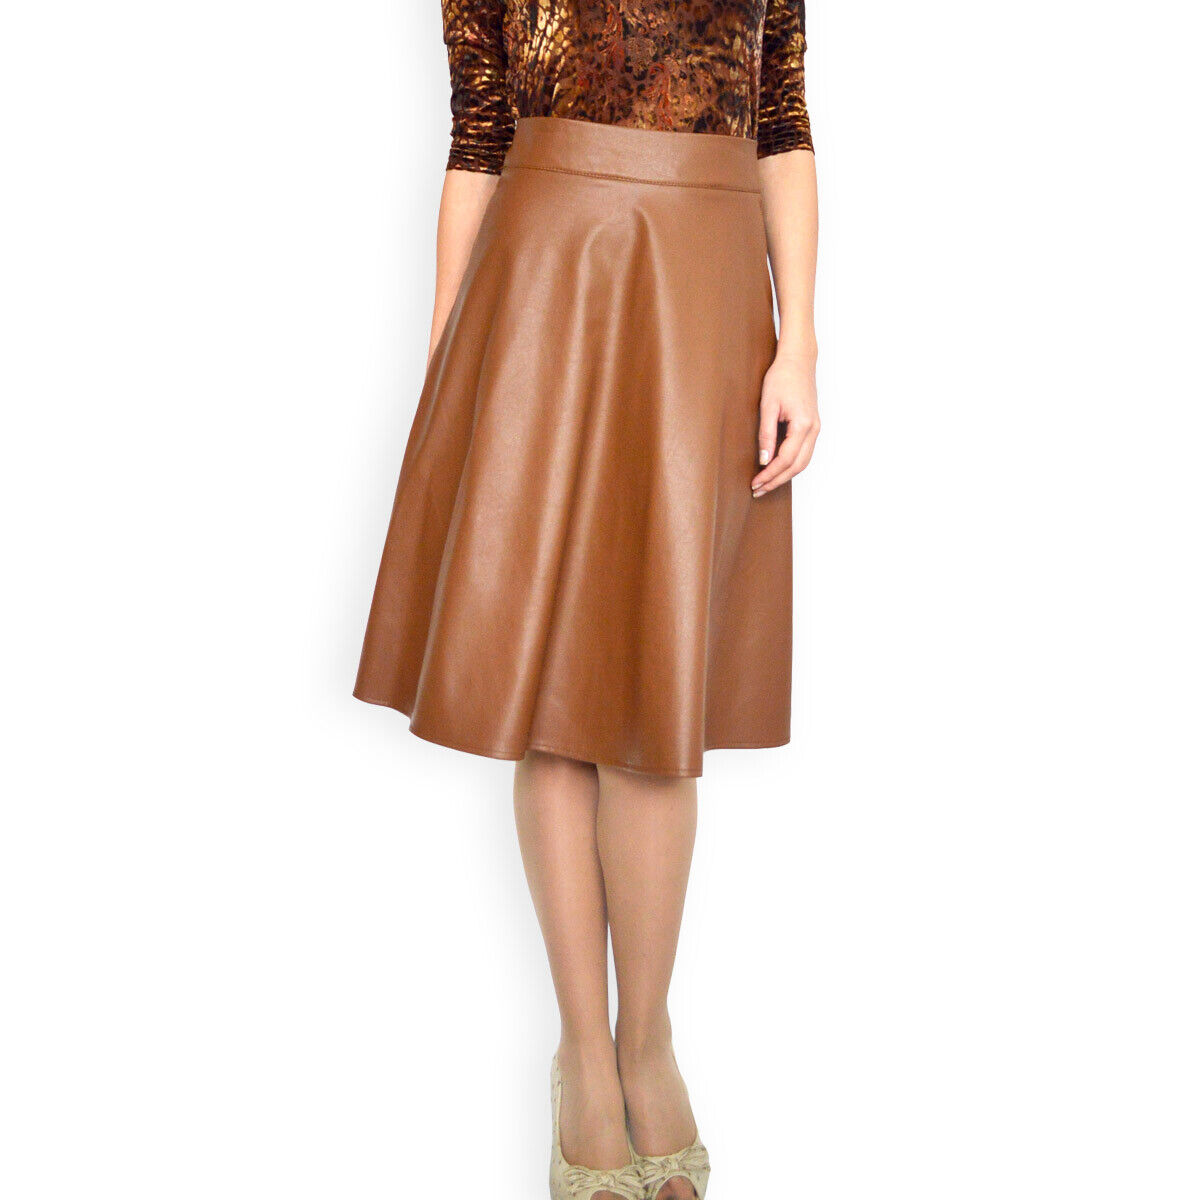 Casual Office Lined A-Line Brown Faux Leather skirt